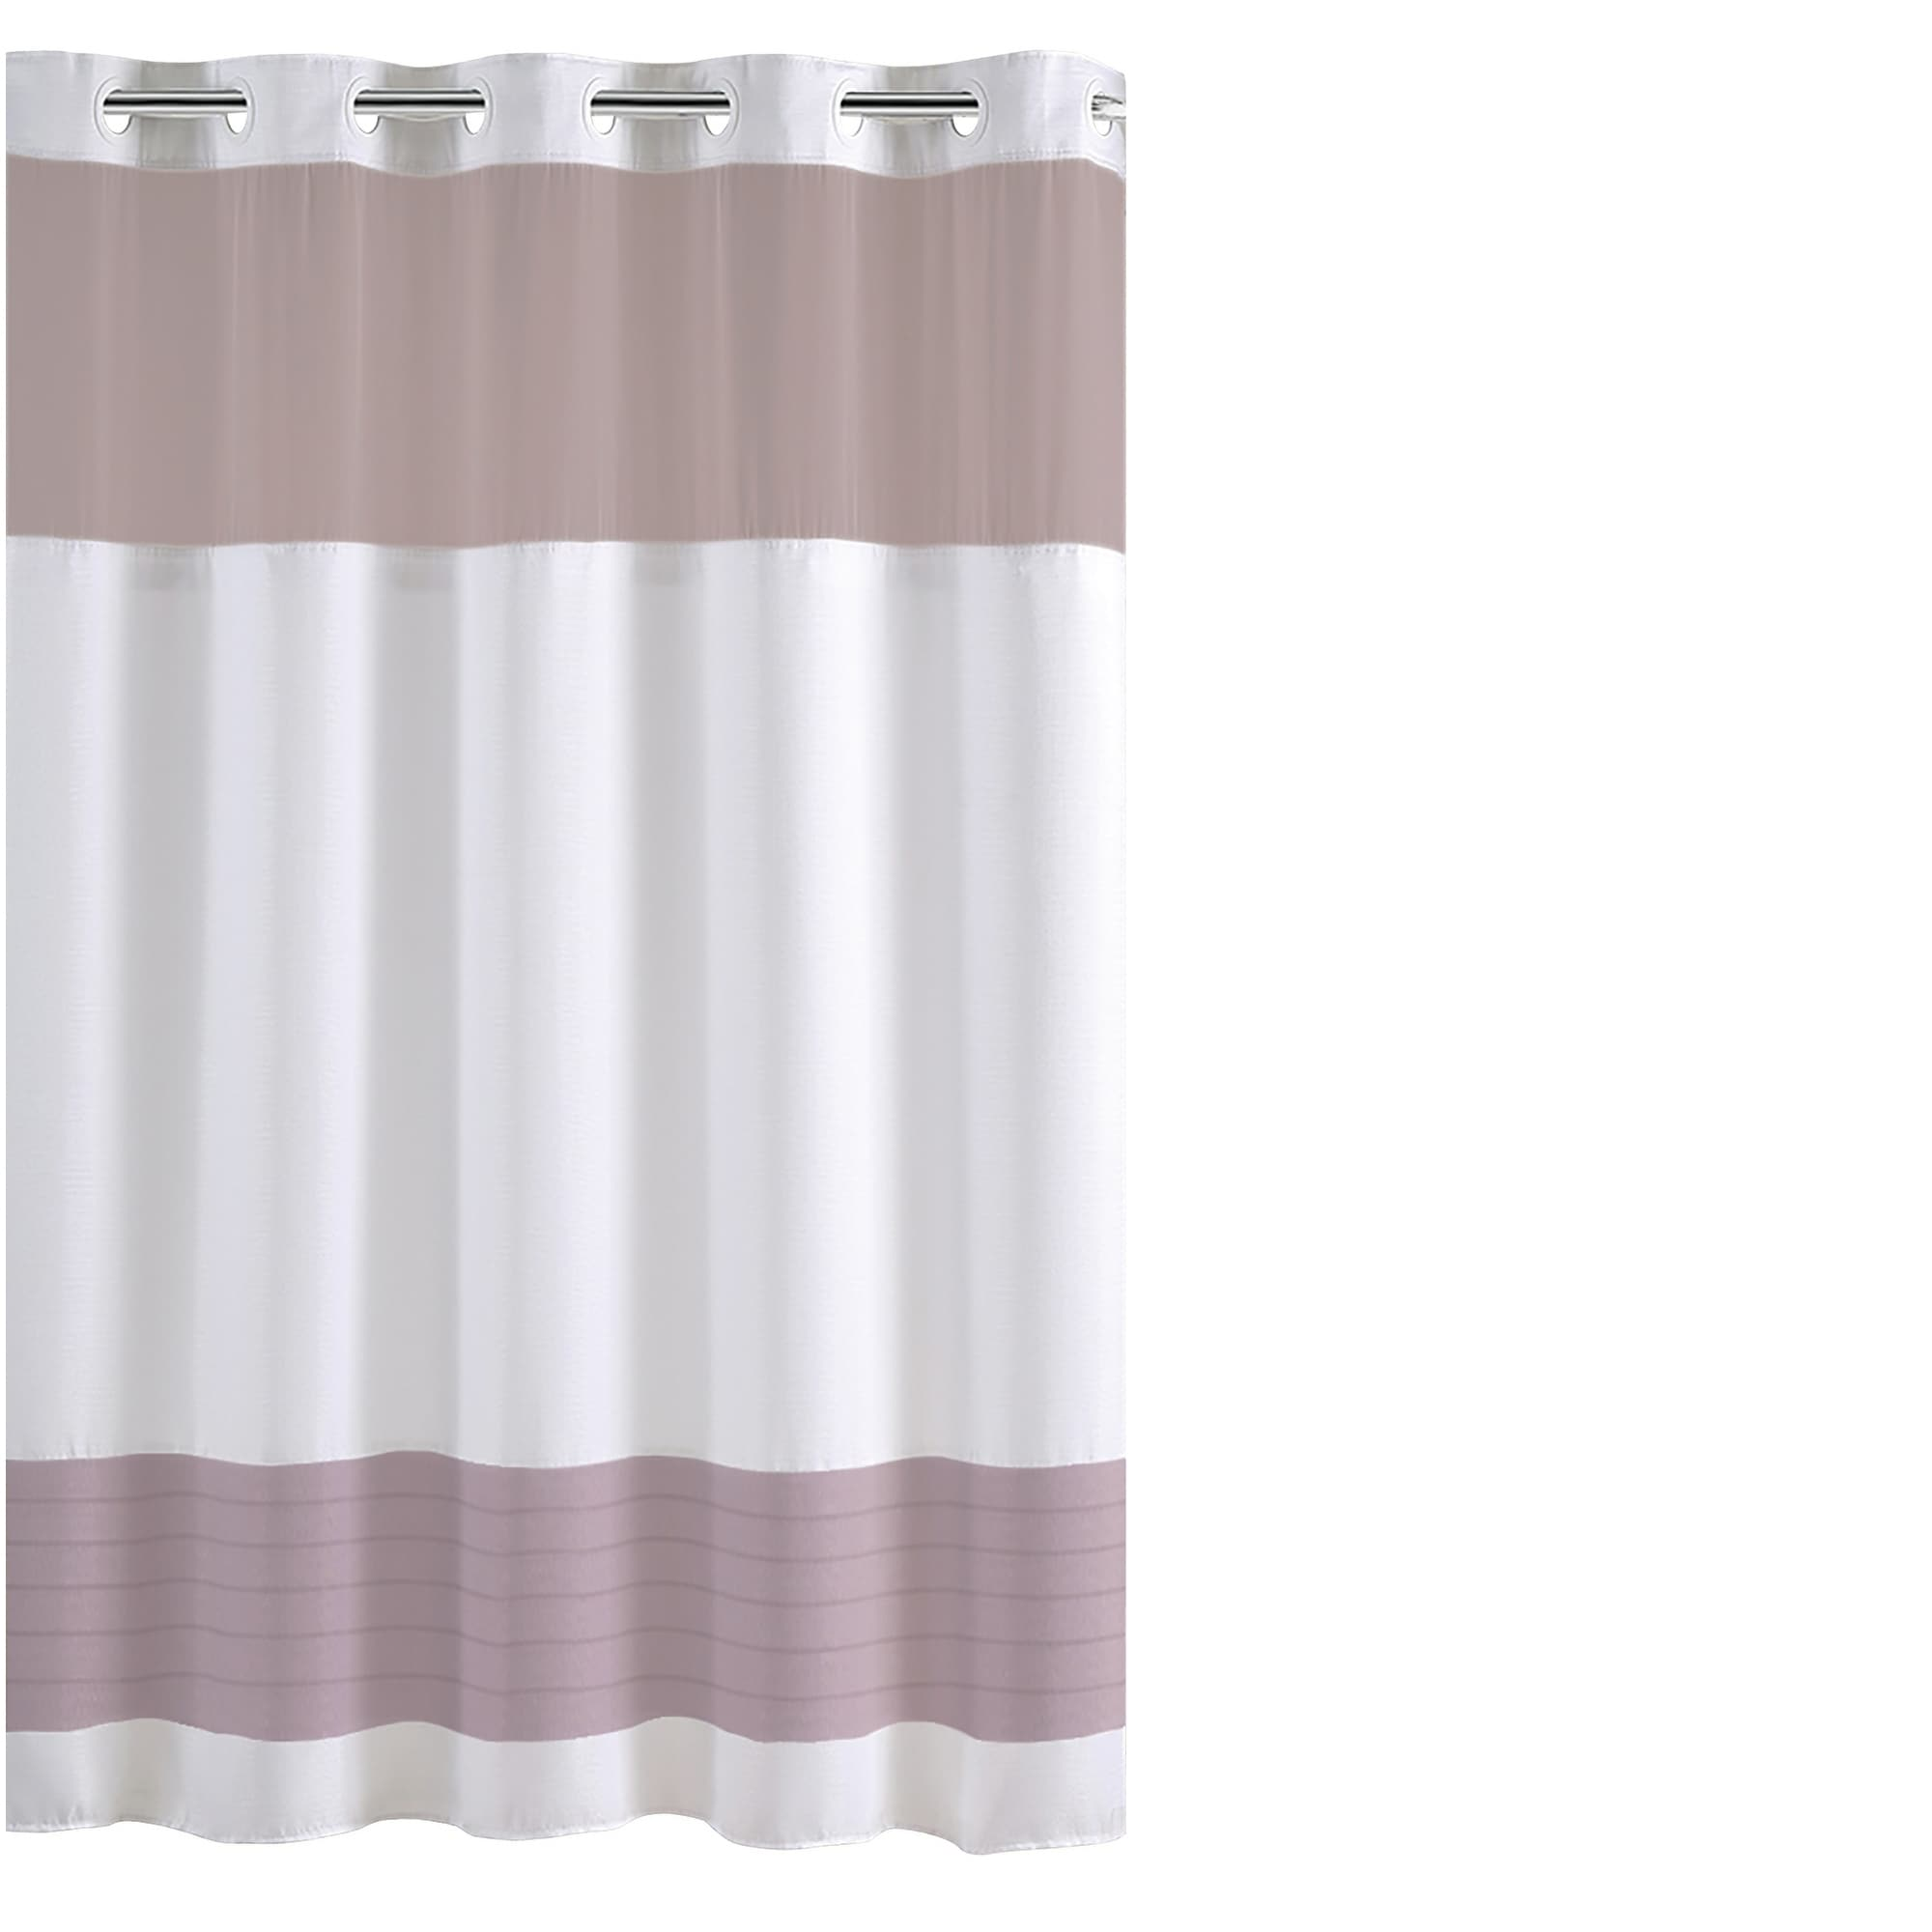 Shop Black Friday Deals On Hookless Color Block Shower Curtain With Fabric Liner Lavender Overstock 28727953